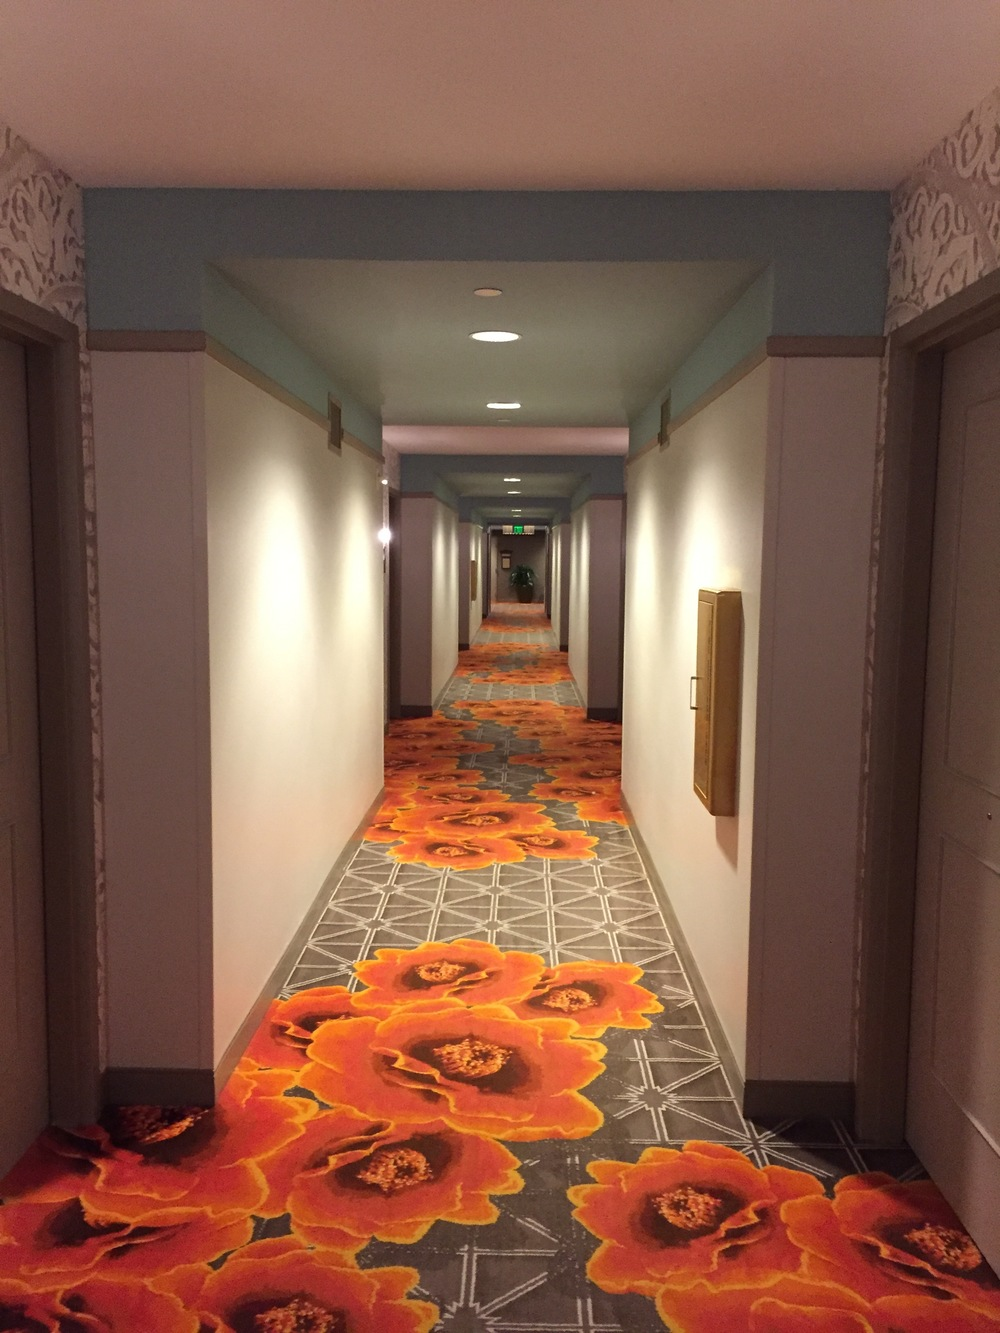 At the end of each day, this hallway to our room seemed endless, and our feet moaned in our shoes.